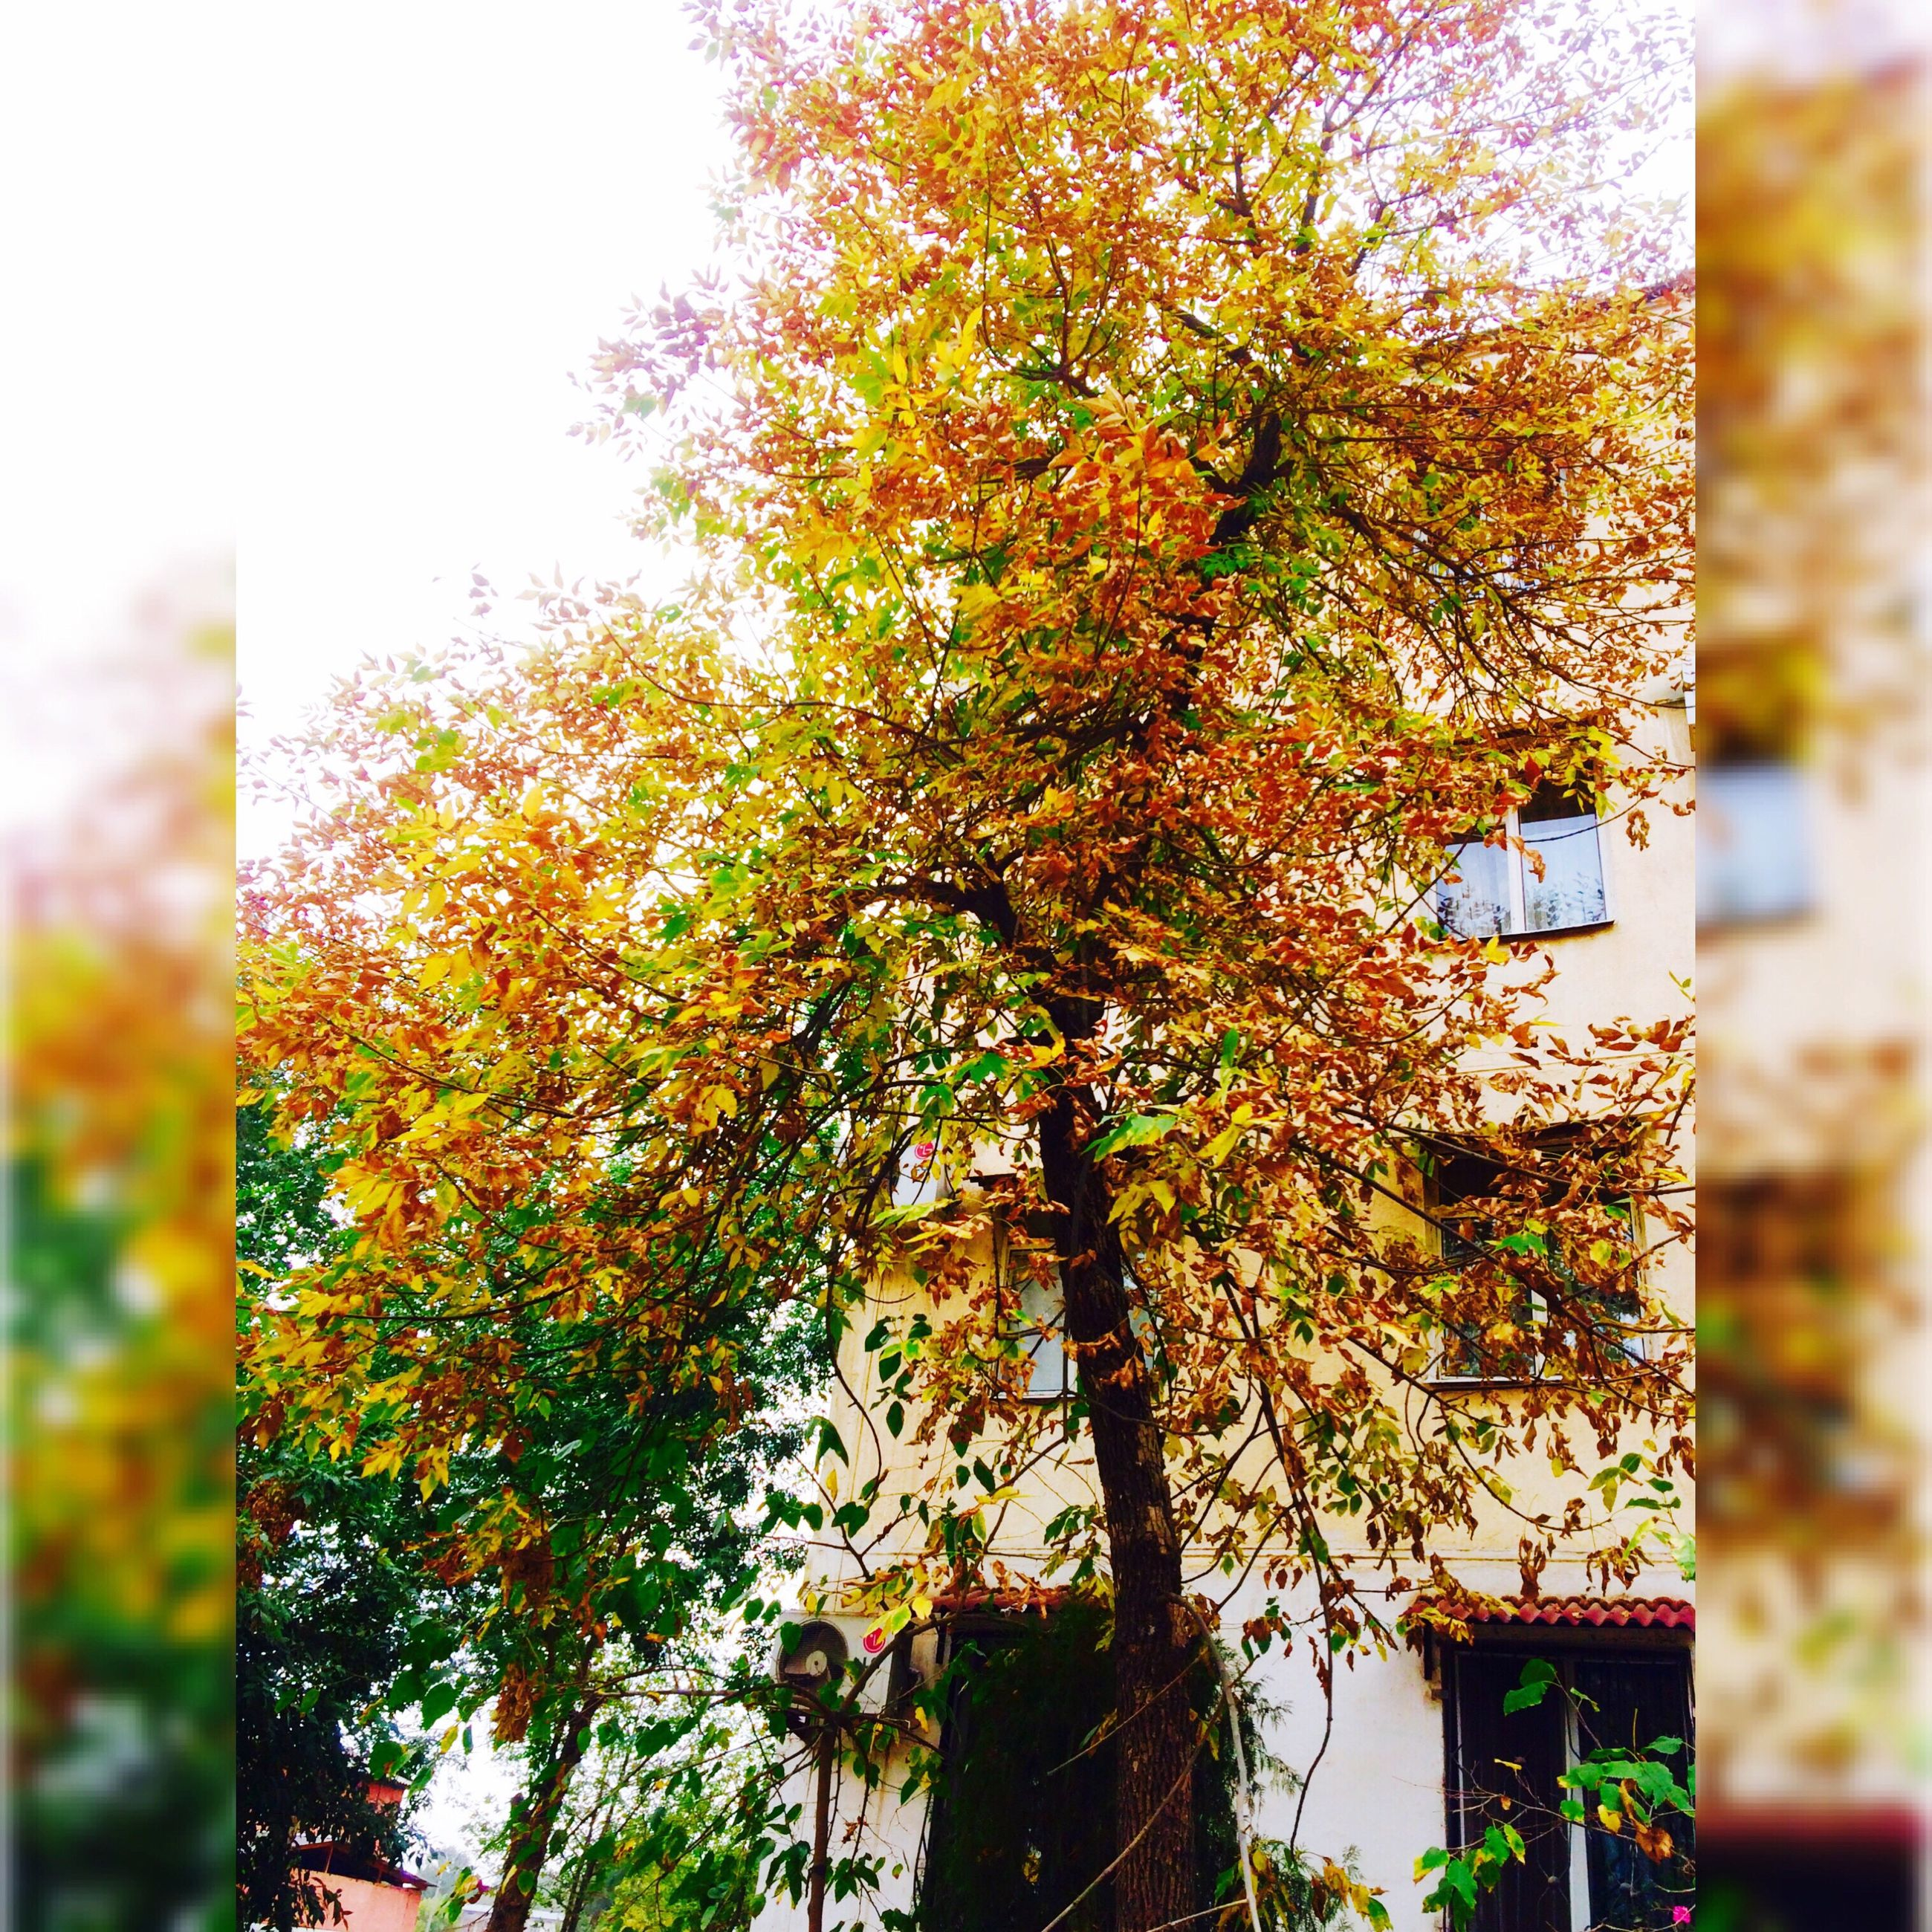 tree, growth, tree trunk, change, day, branch, orange color, growing, beauty in nature, nature, outdoors, multi colored, no people, scenics, freshness, tranquility, green color